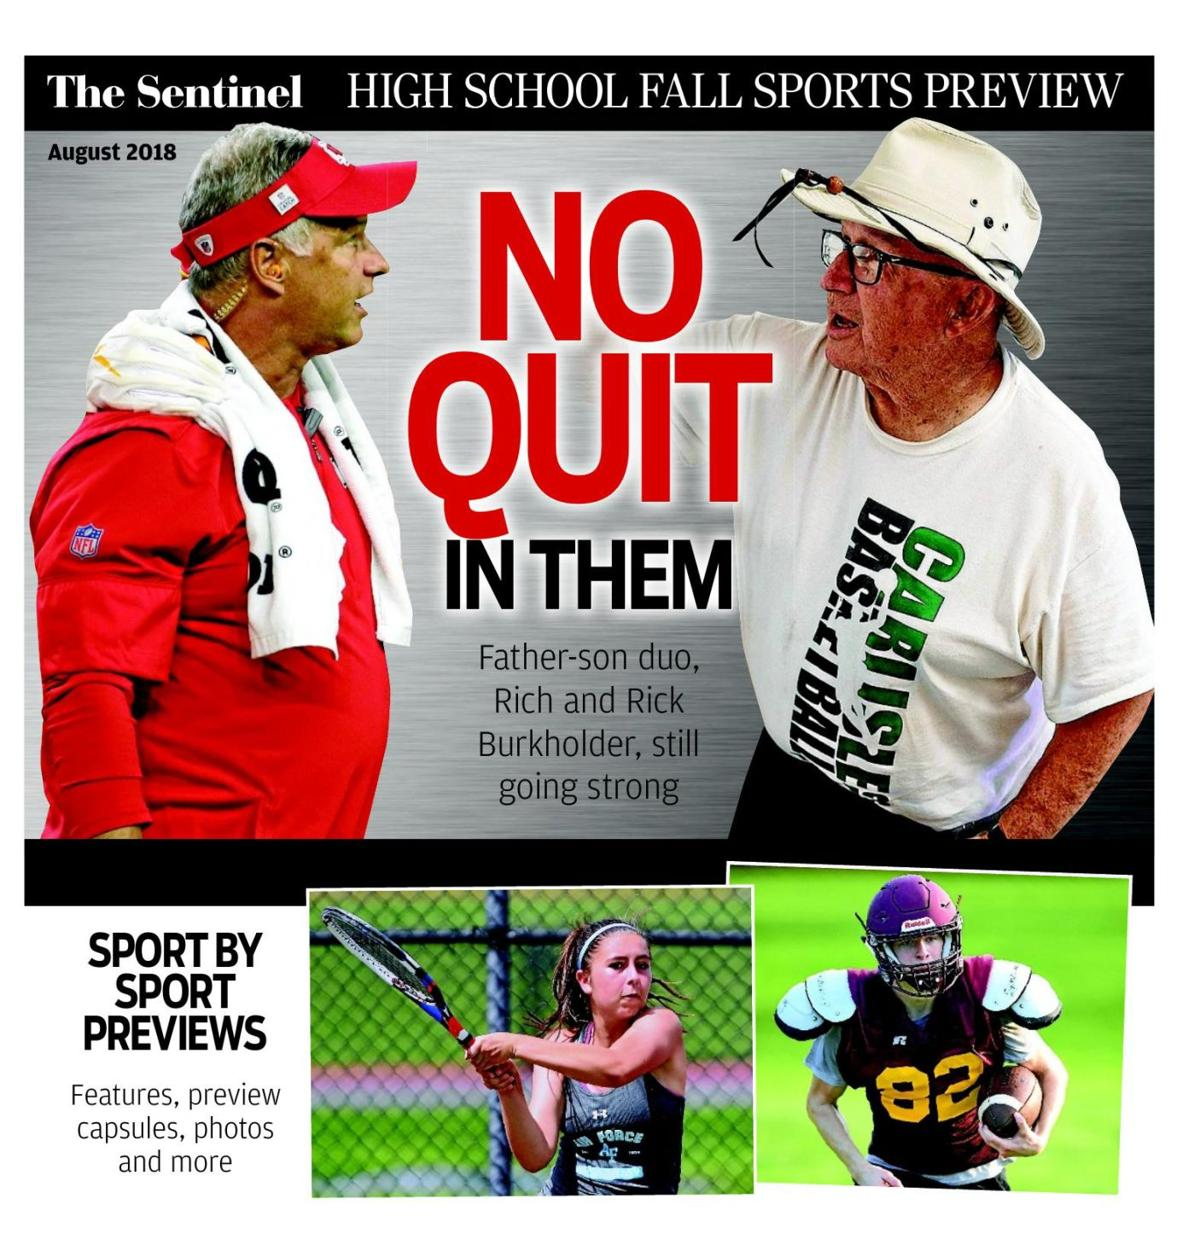 High School Fall Sports Preview